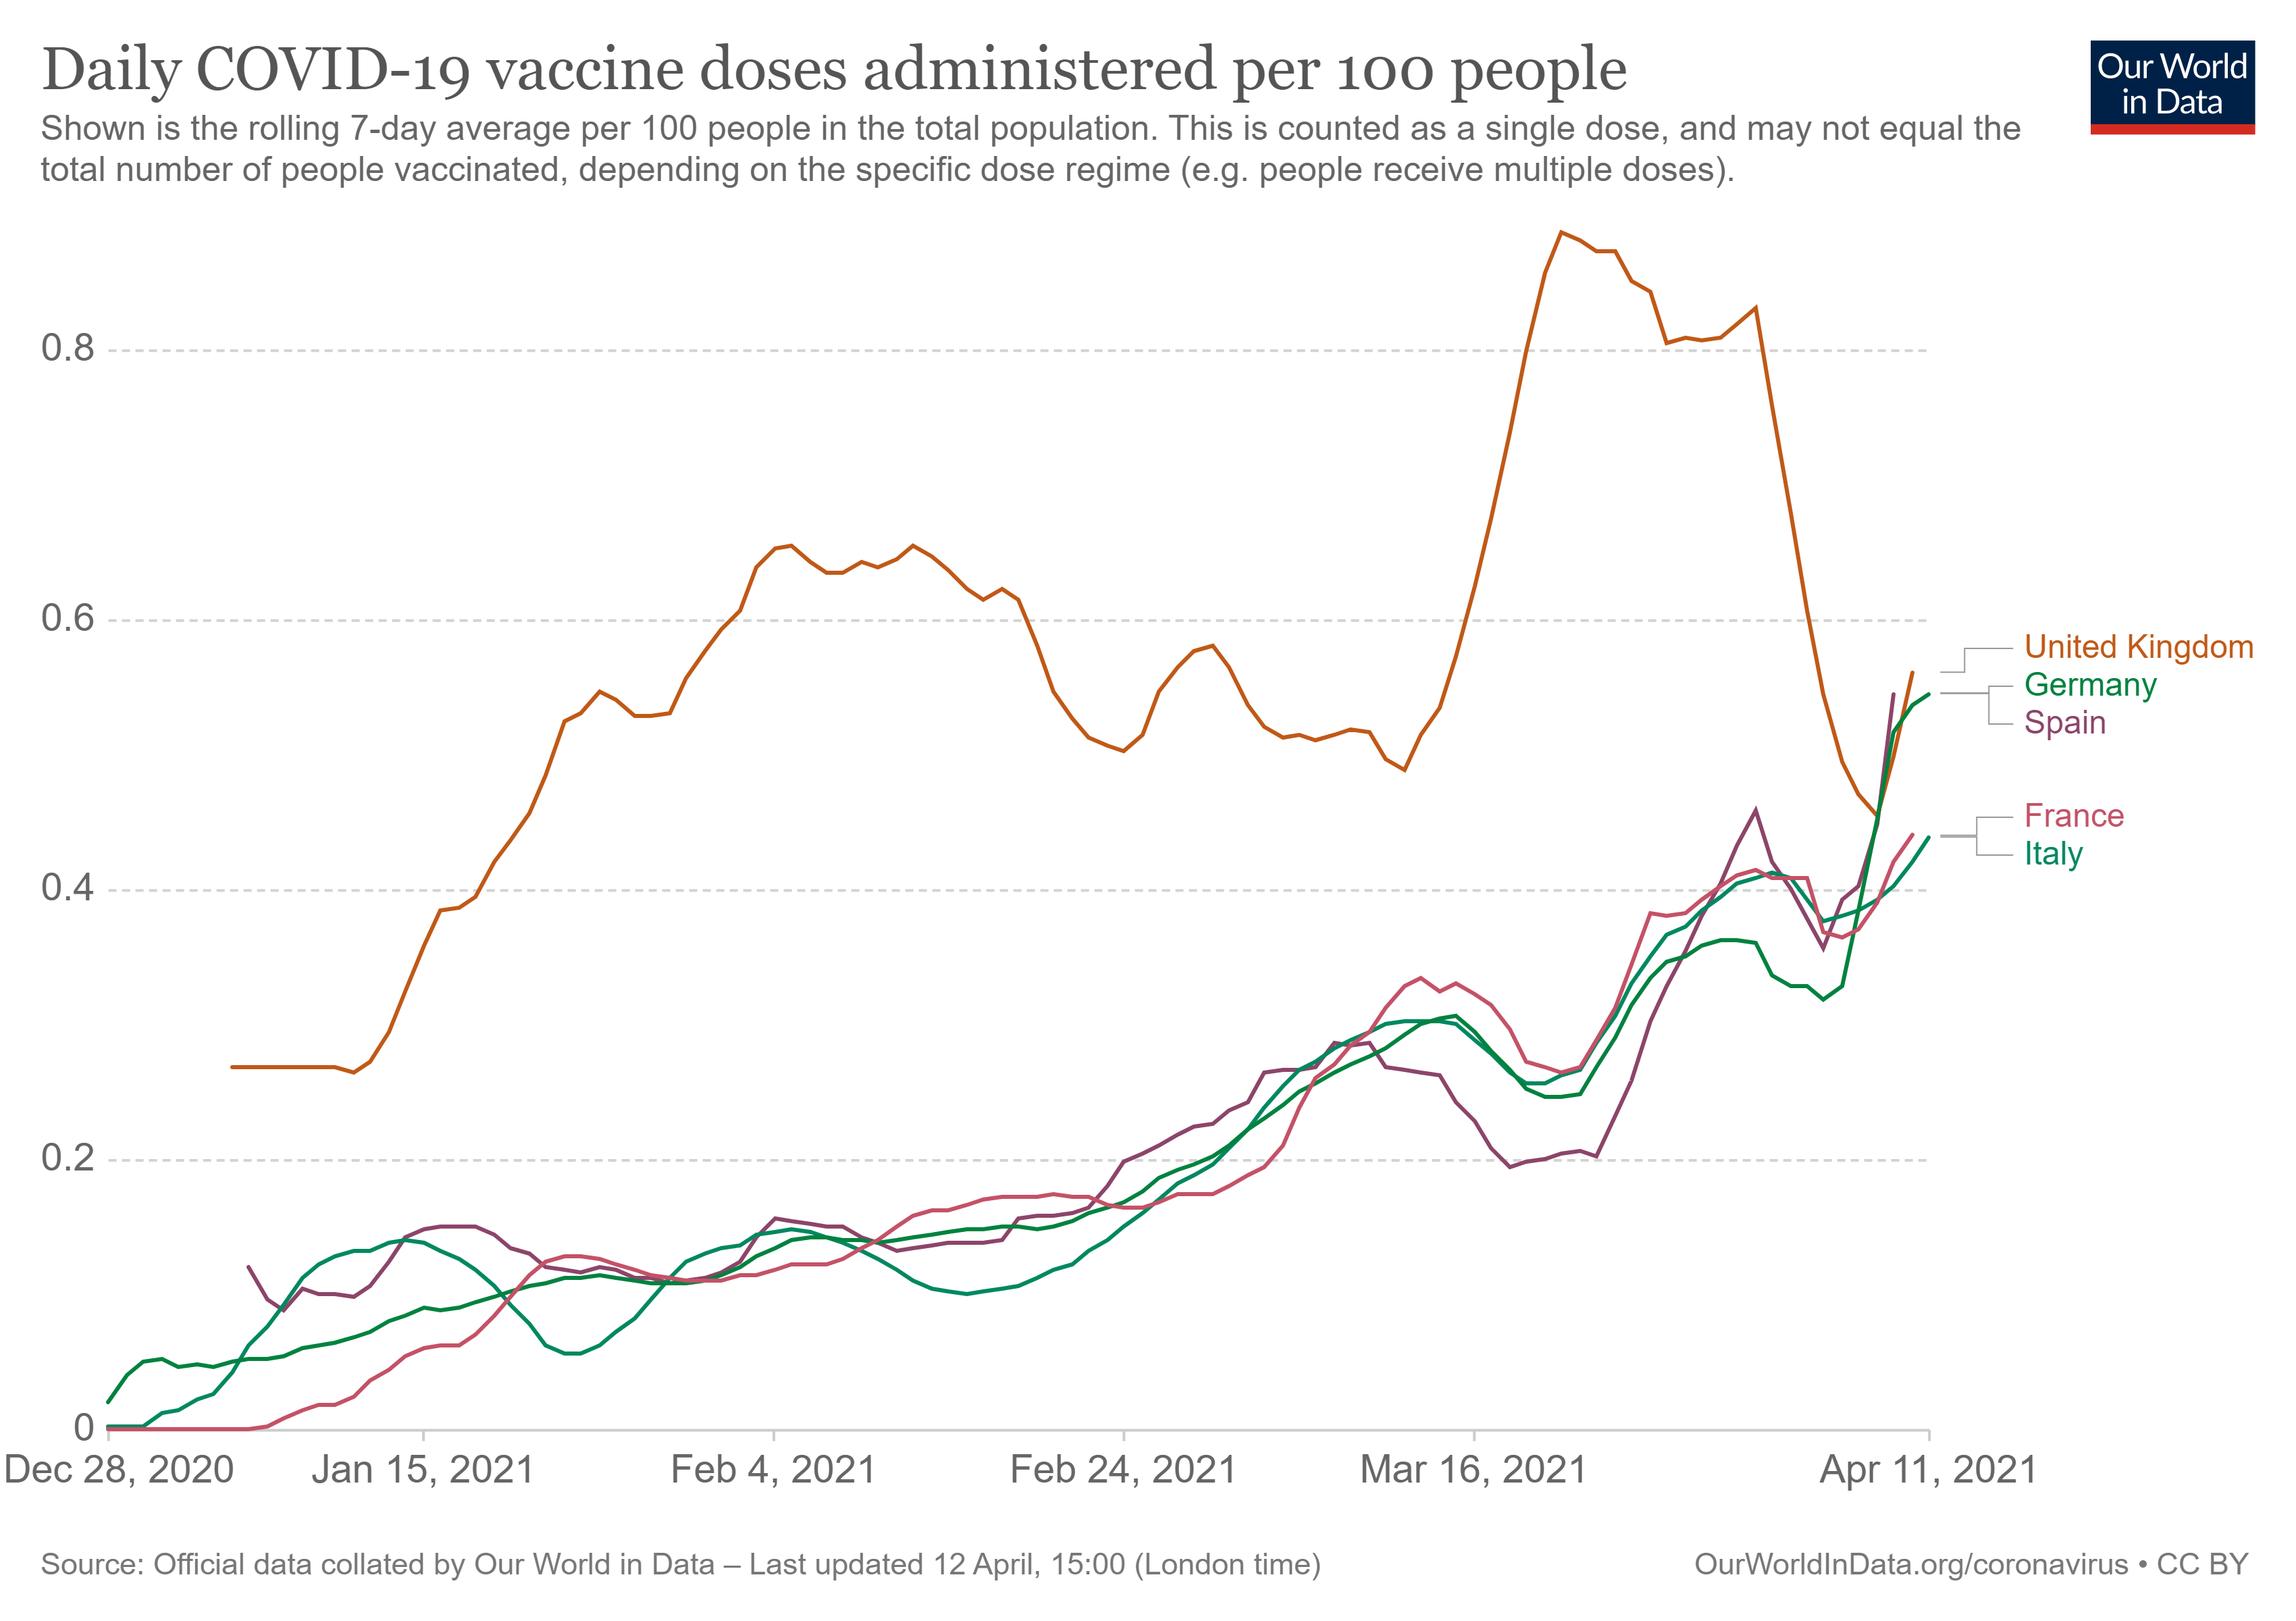 daily-covid-vaccination-doses-per-capita.png